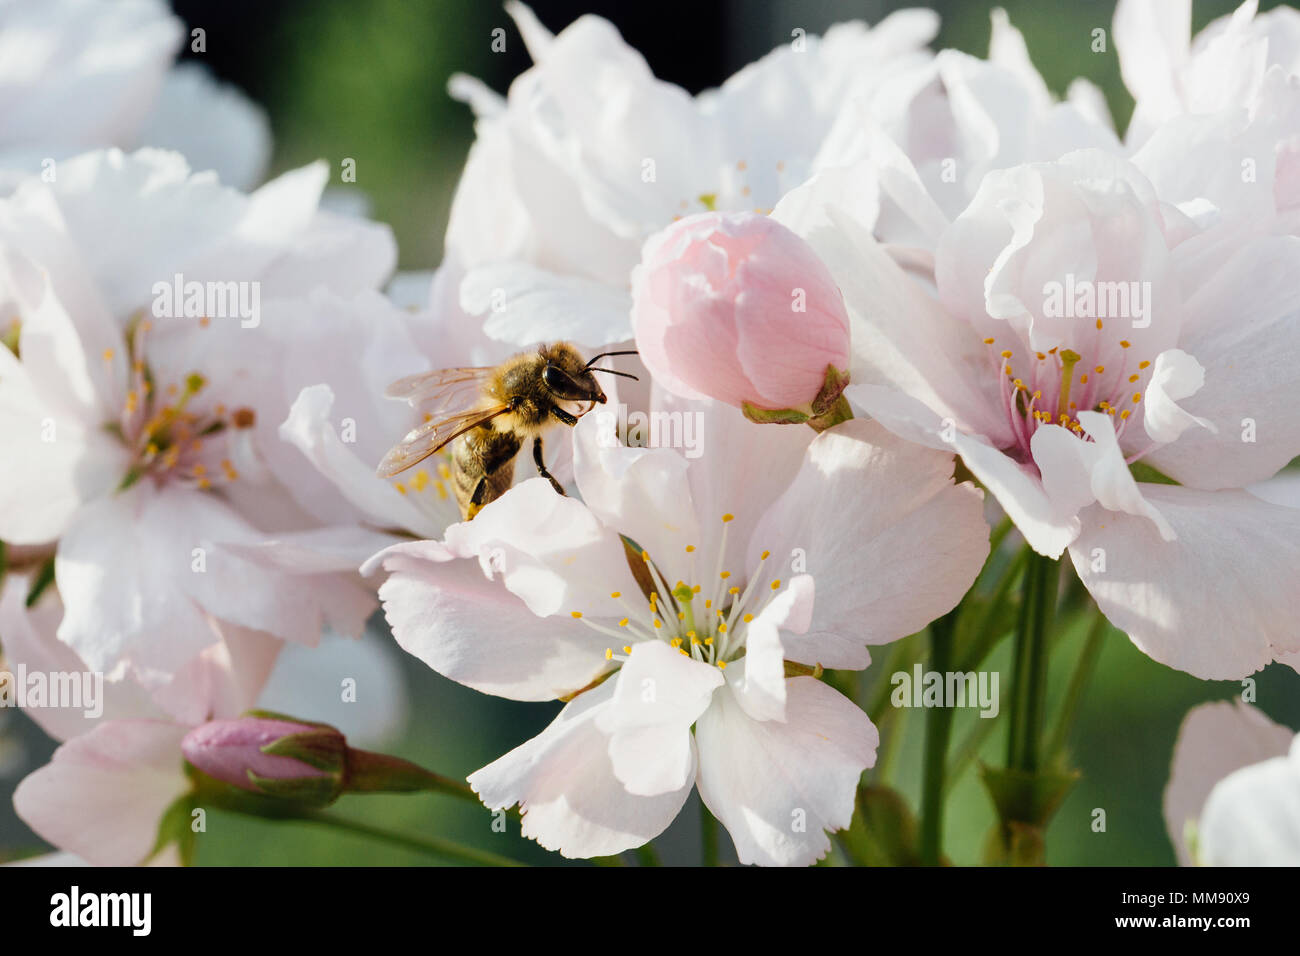 Close up of a bee pollinating cherry tree flowers - Stock Image